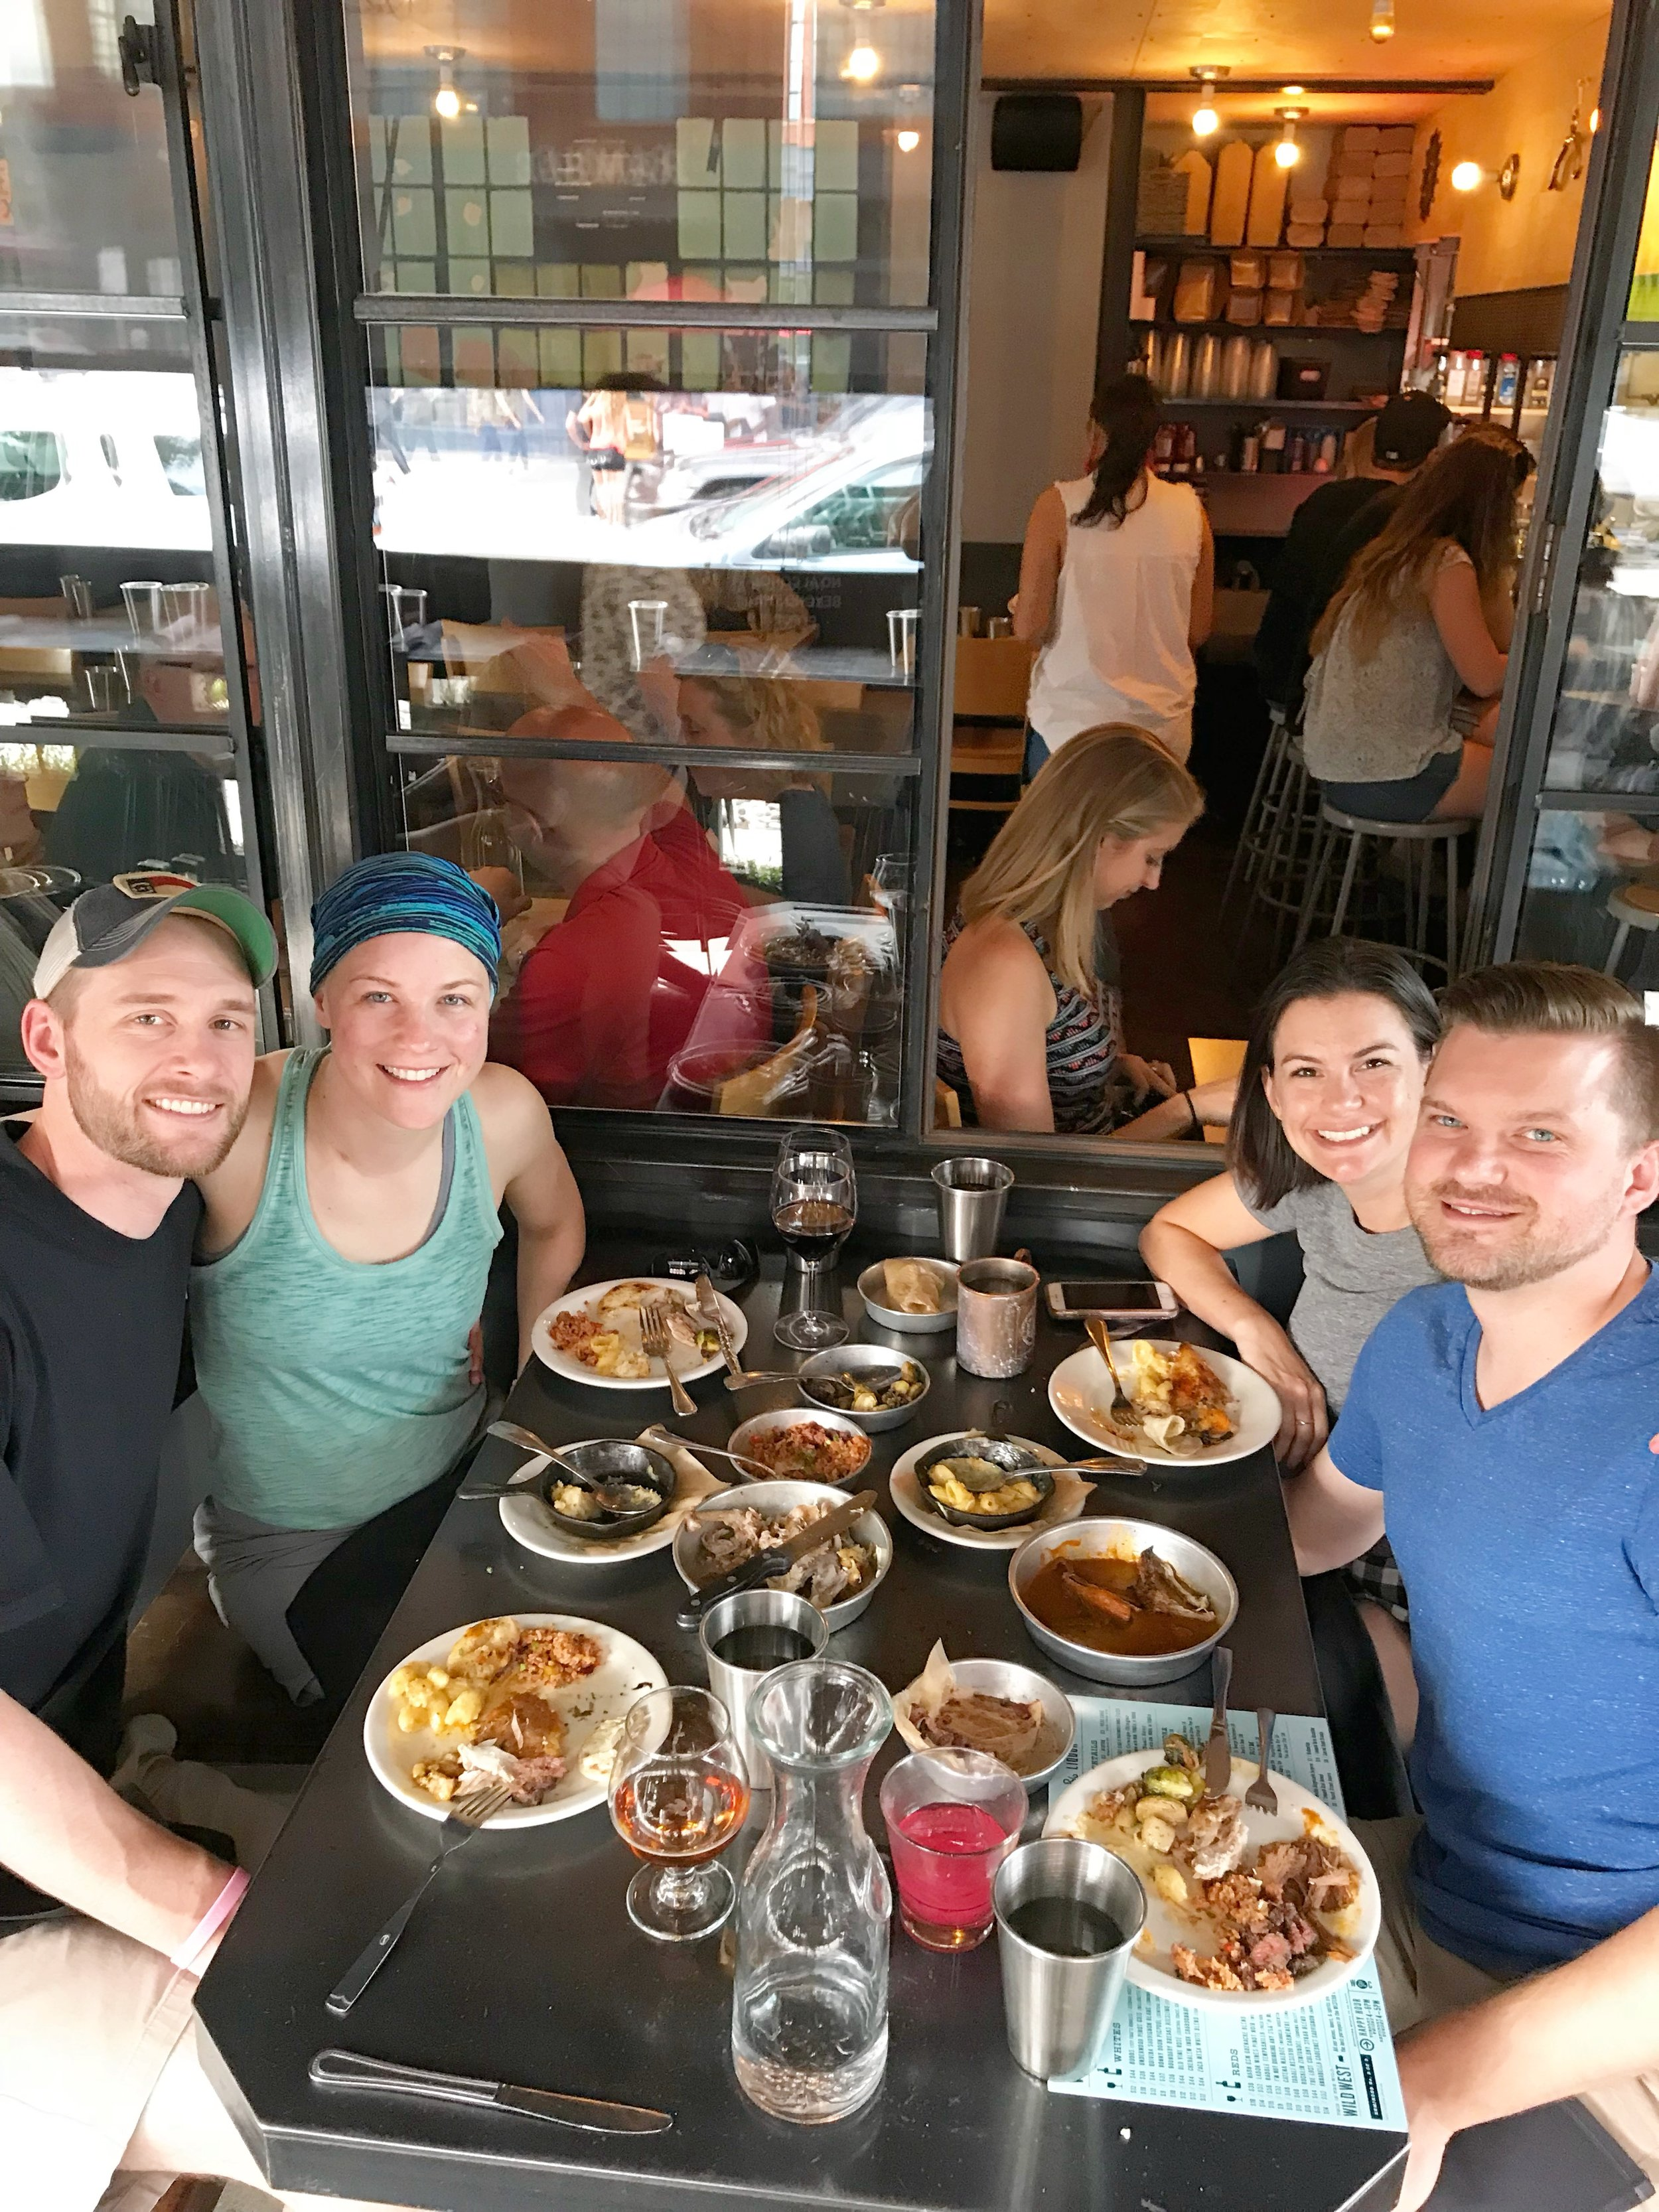 Me, Jennifer, Christy, and Patrick in Denver this summer. Not only did we catch The Avett Brothers at Red Rocks, we also ate a lot of good food like this meal at    Work & Class   !